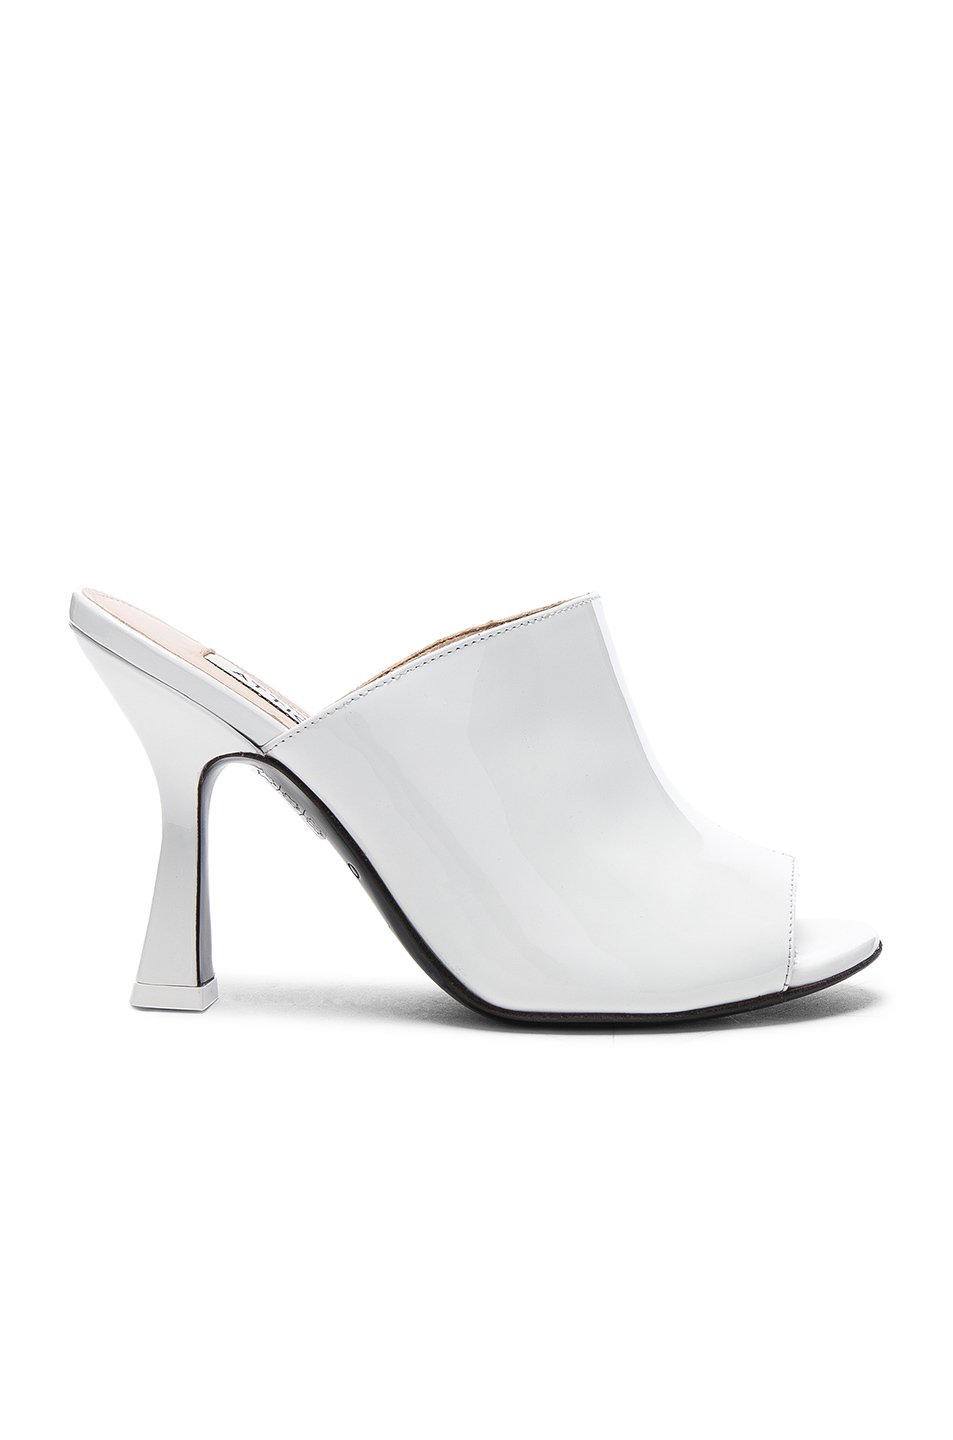 ATTICO Patent Leather Tomaia Slide Heels in White